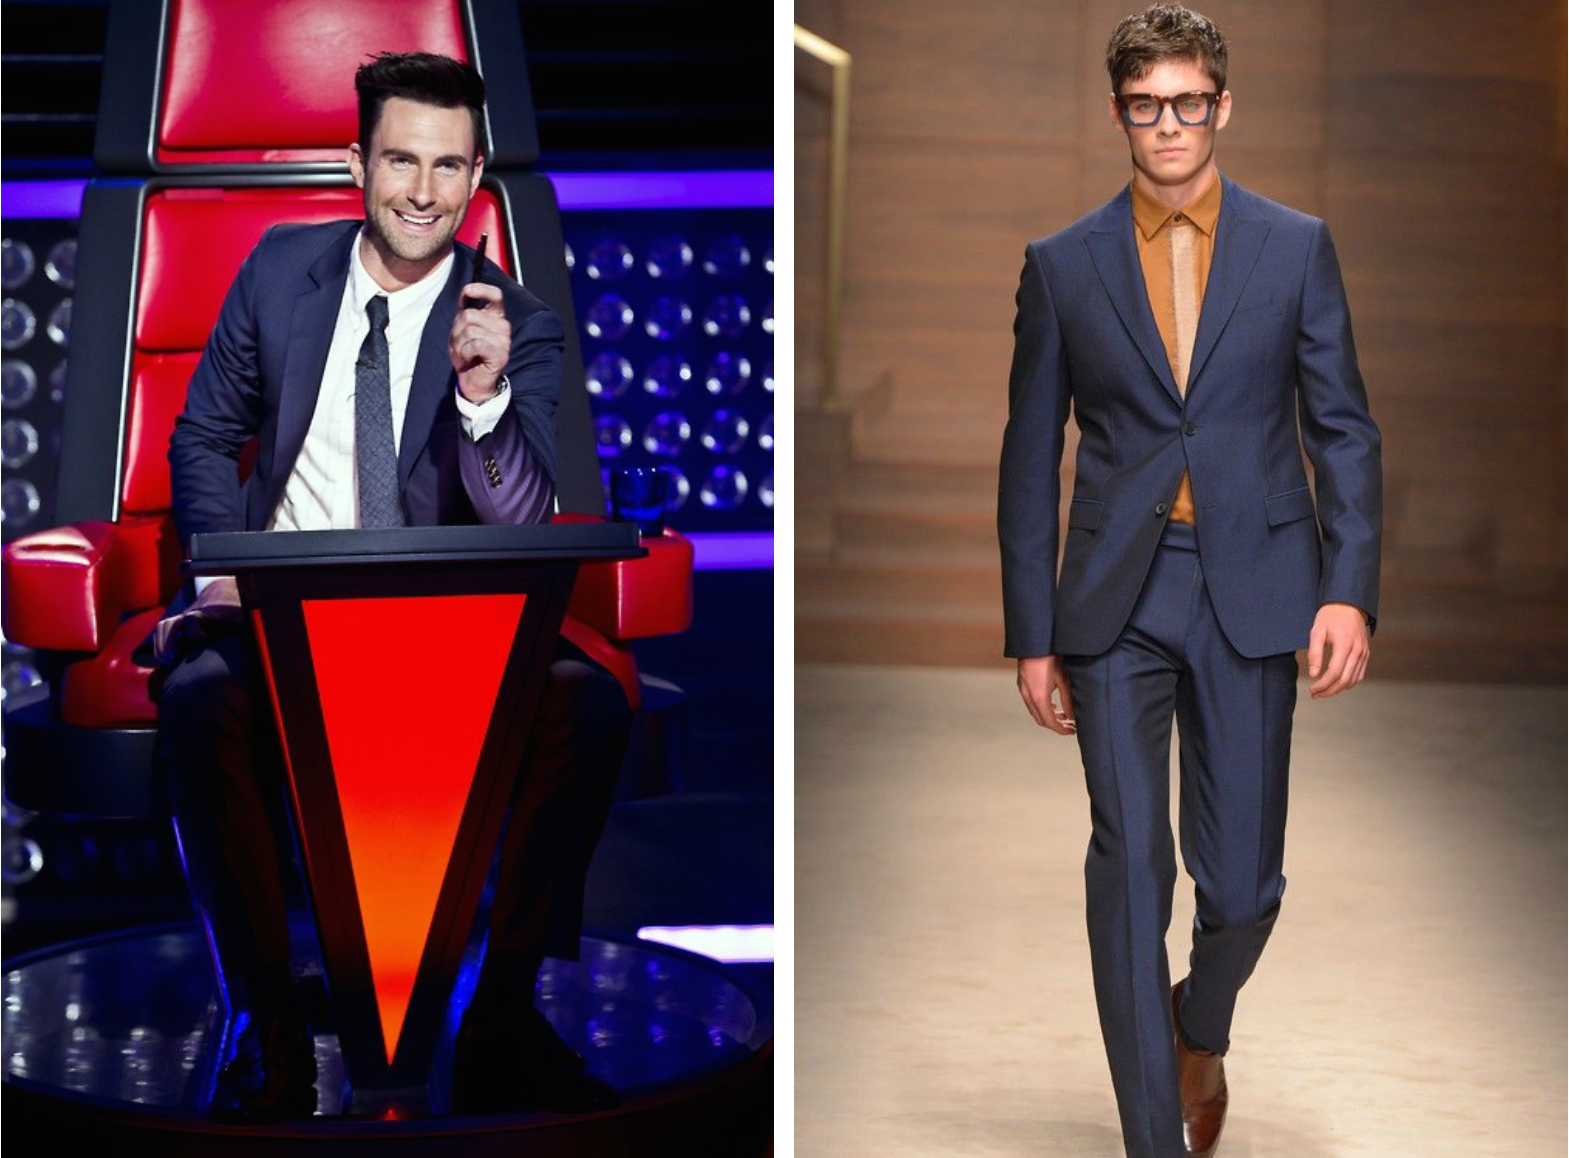 From left to right: Adam Levine wearing a blue suit on set of The Voice, and the Salvatore Ferragamo Fall 2015 Collection.